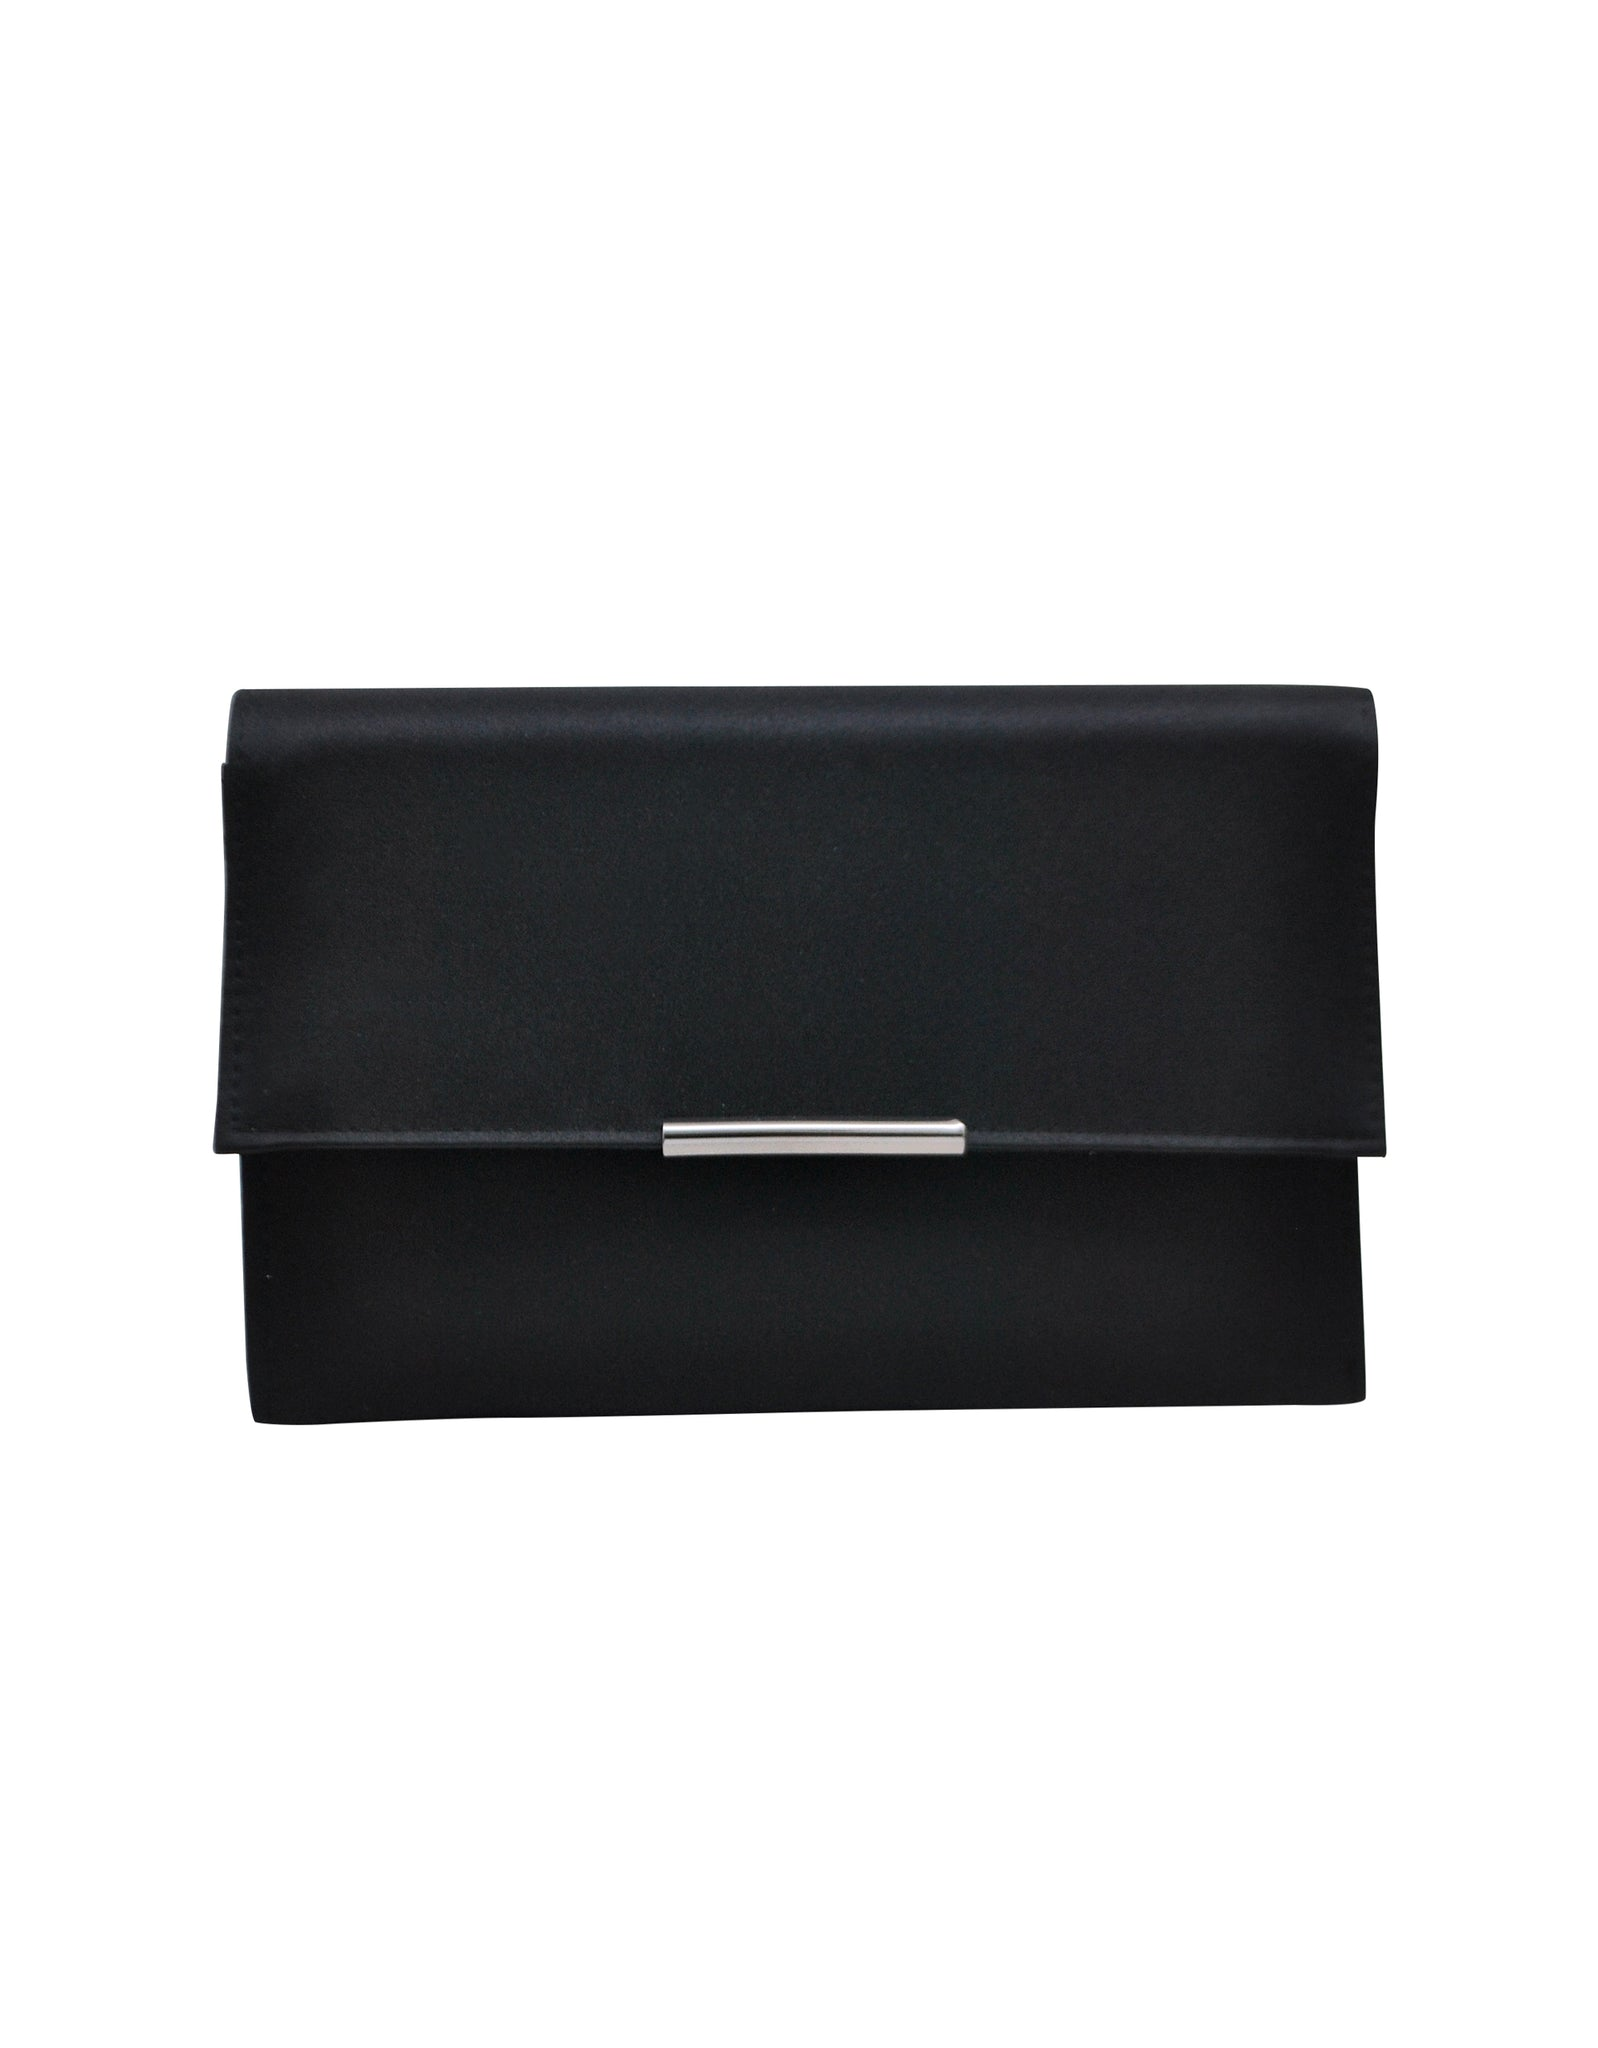 Haisley Satin Compartment Clutch